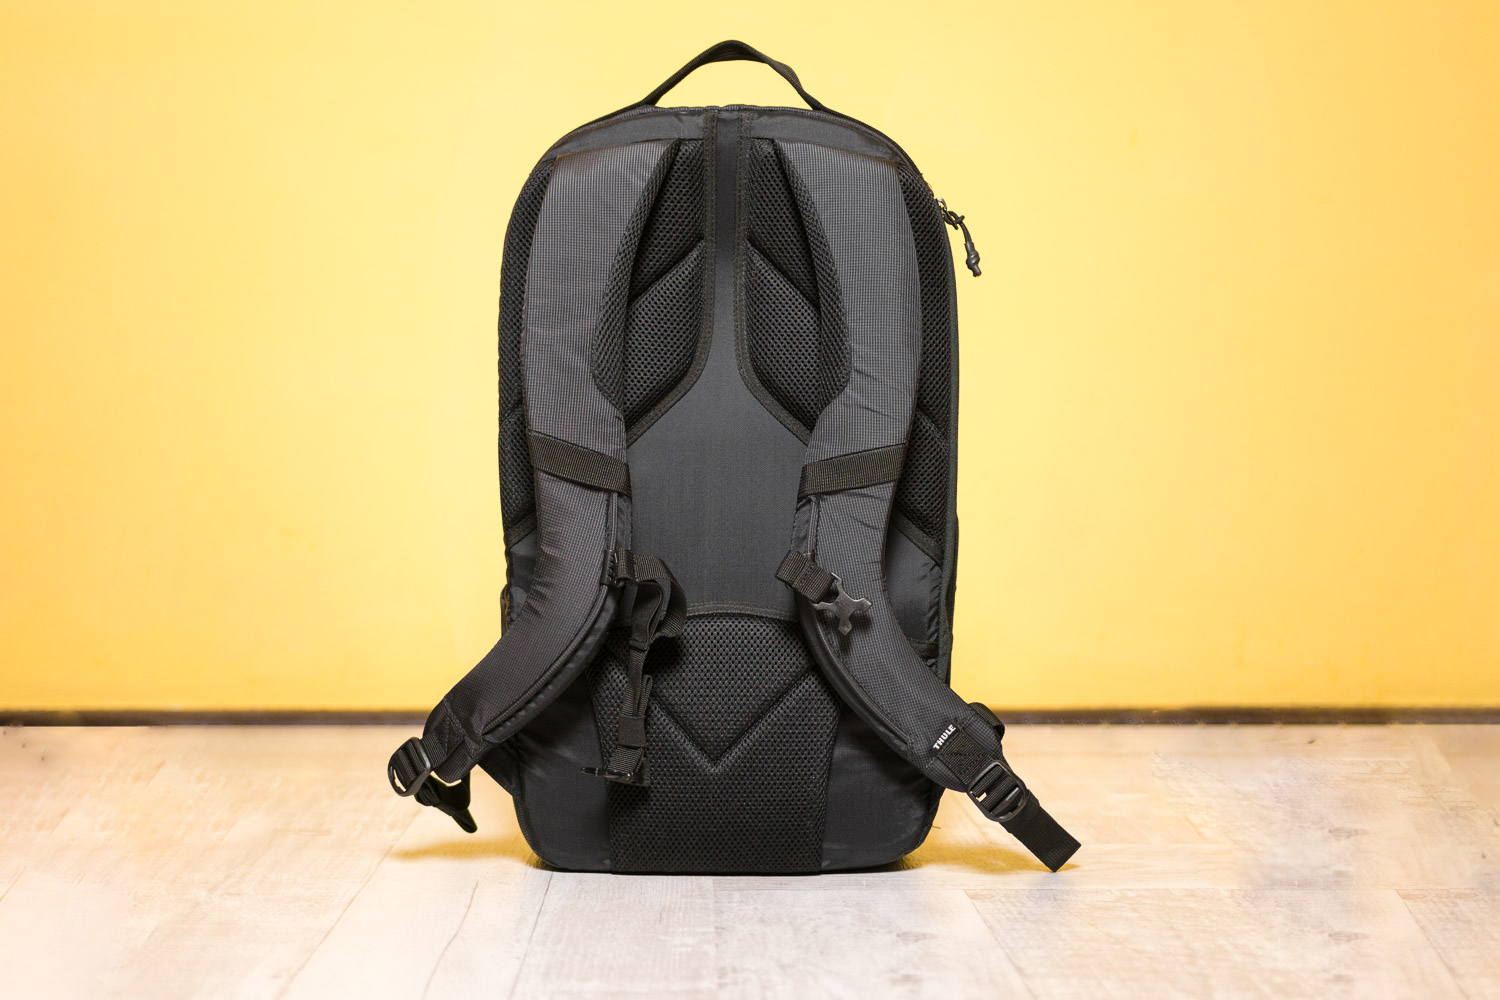 Thule Aspect DSLR Backpack - recenzja, opinie, test, cena